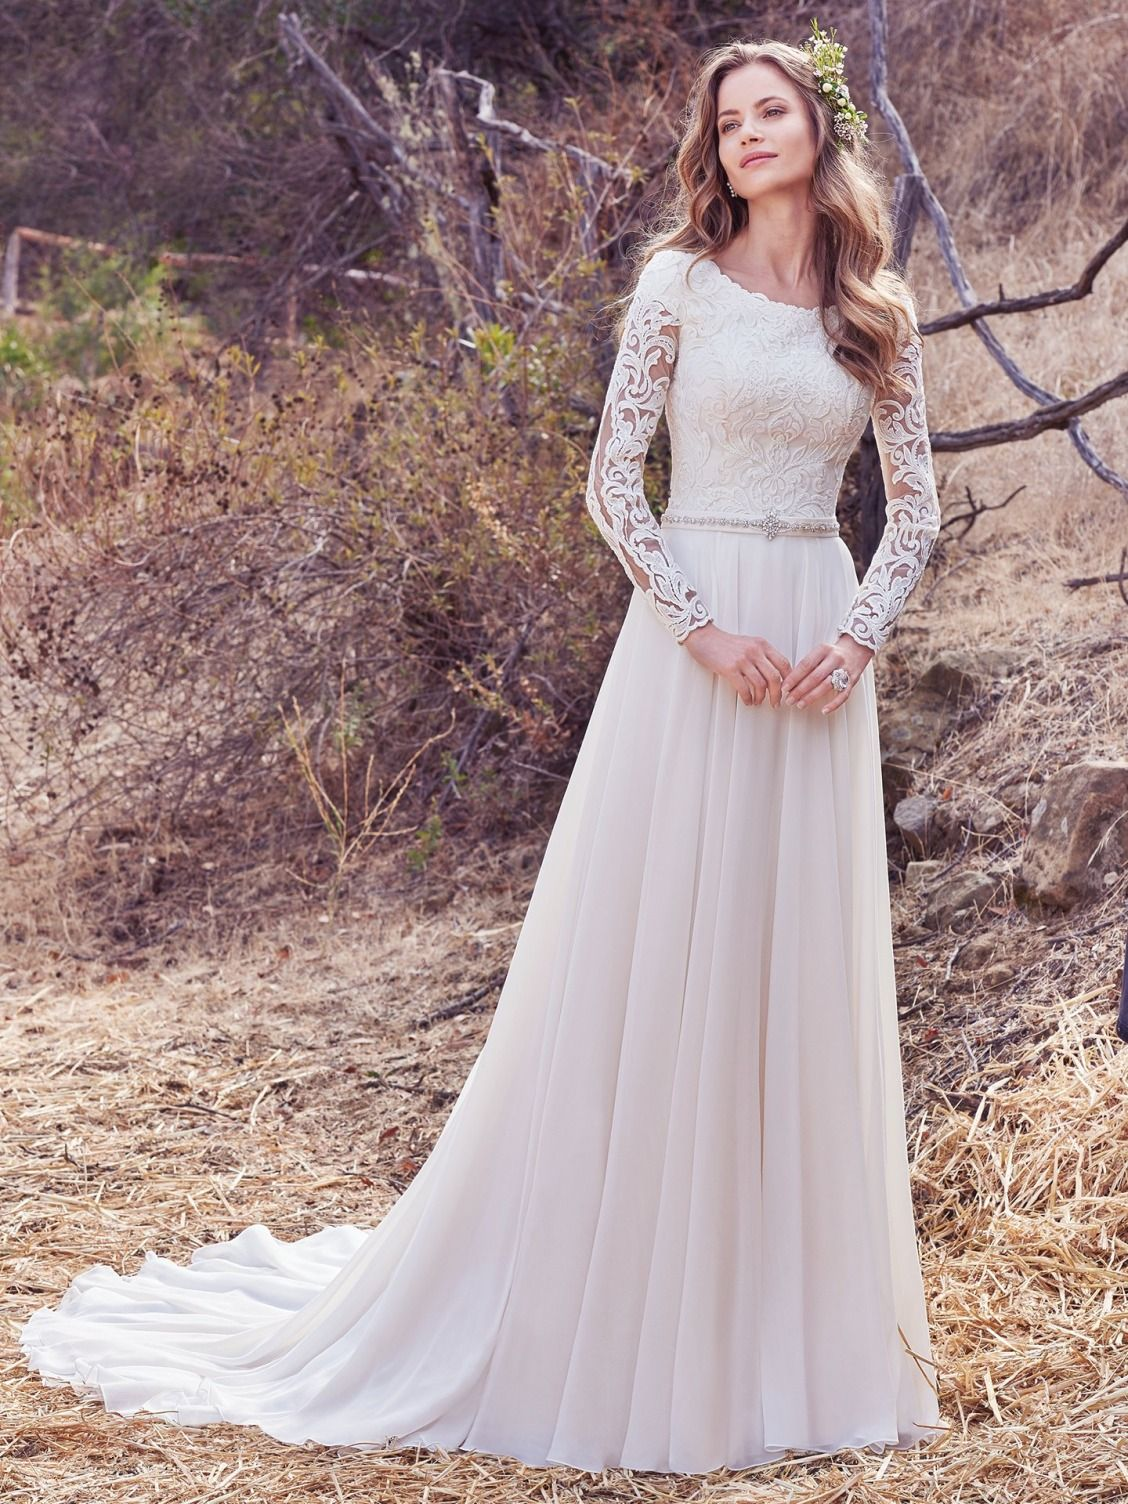 Made Custom wedding dresses utah pictures advise dress for summer in 2019